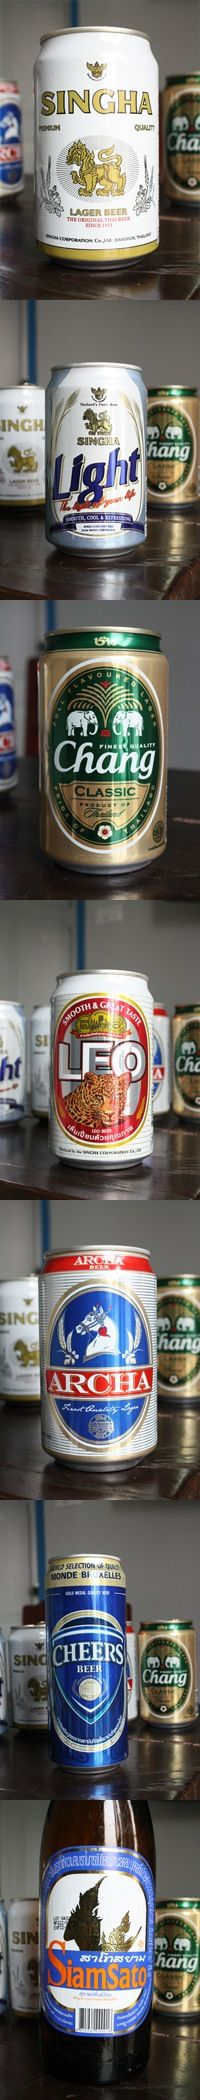 Best Thai Beer... researched thoroughly